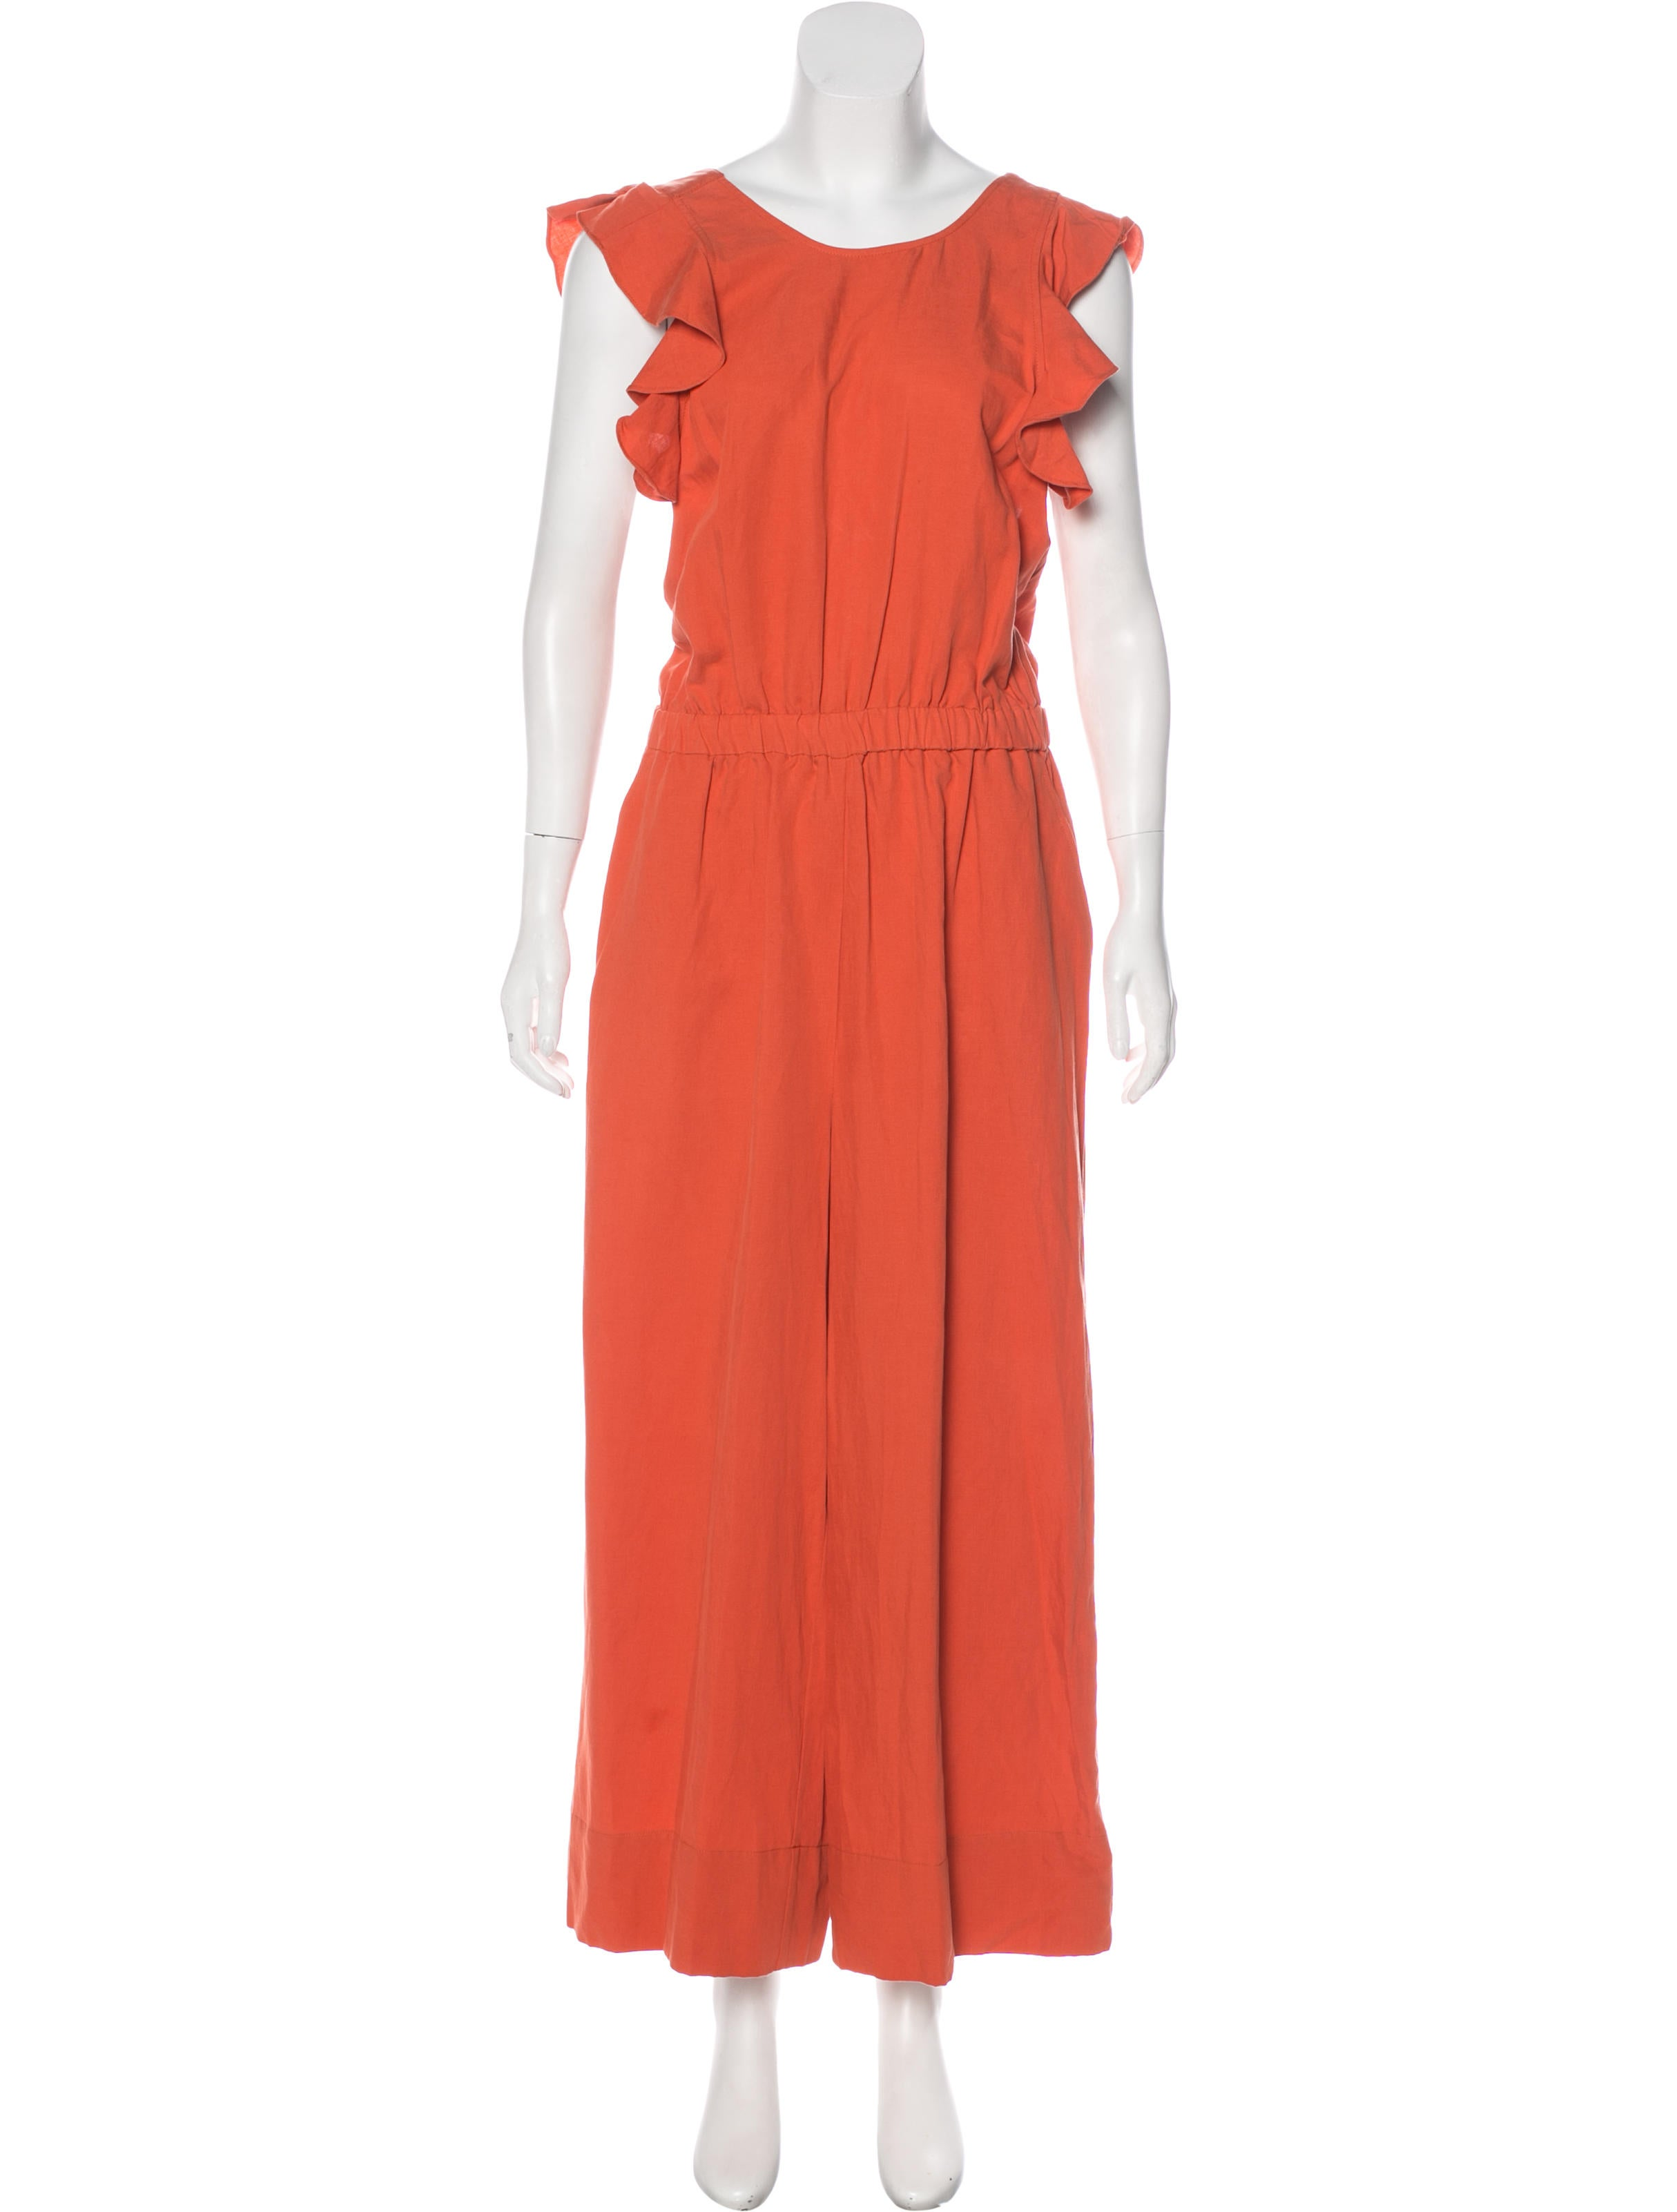 d306a8a36a2d Ulla Johnson 2017 Viola Jumpsuit w  Tags - Clothing - WUL25838